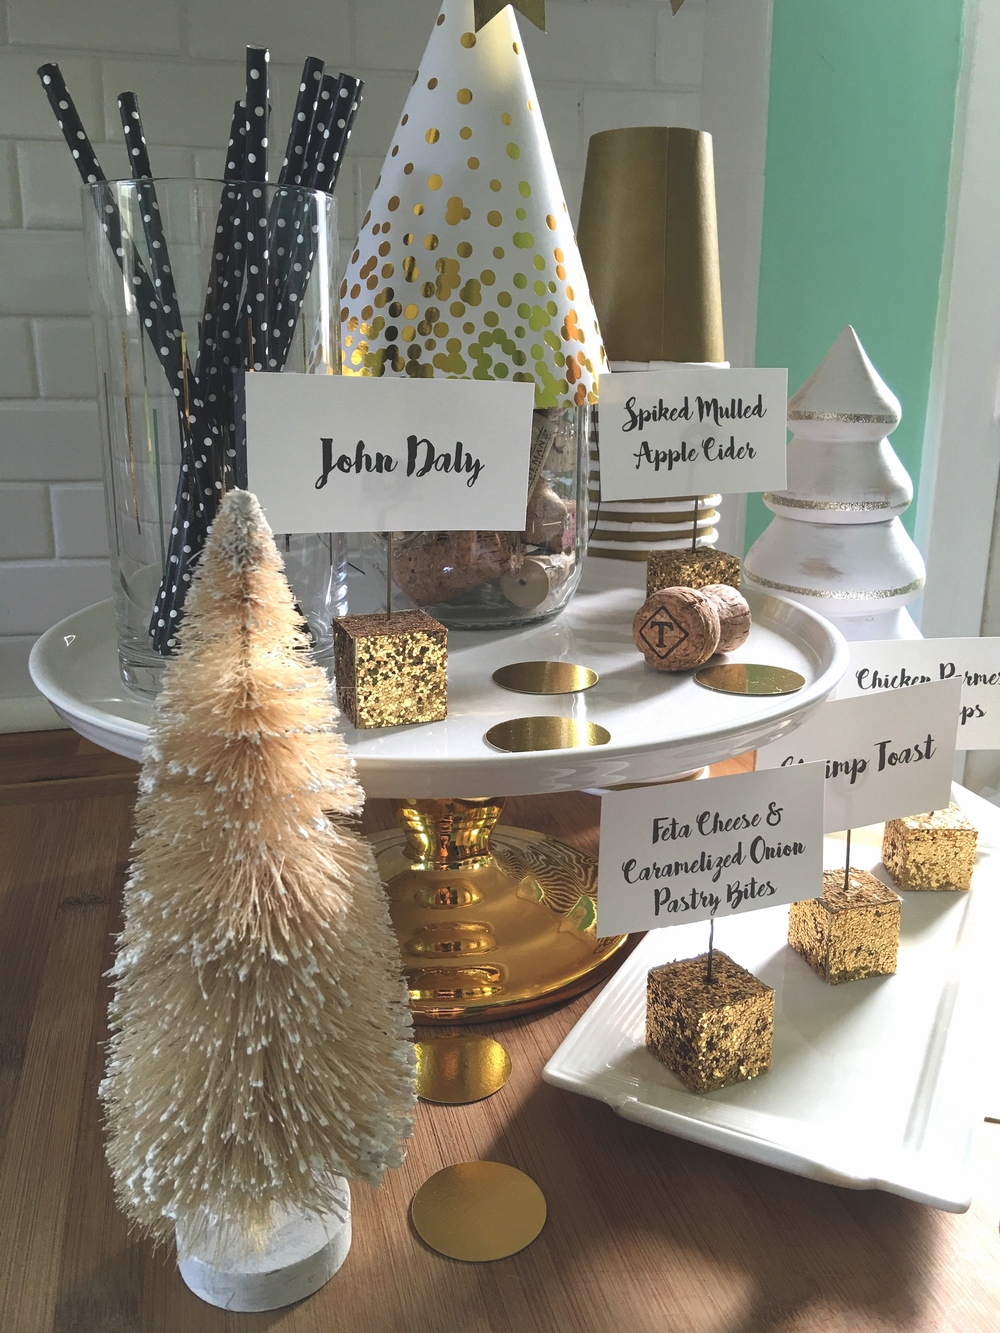 While at West Elm, I chose four wiry yellow Christmas trees with frosted edges. They were half off because it was a few days after Christmas. The Wooden, white trees with gold glitter rings were also half off, and came from Target.